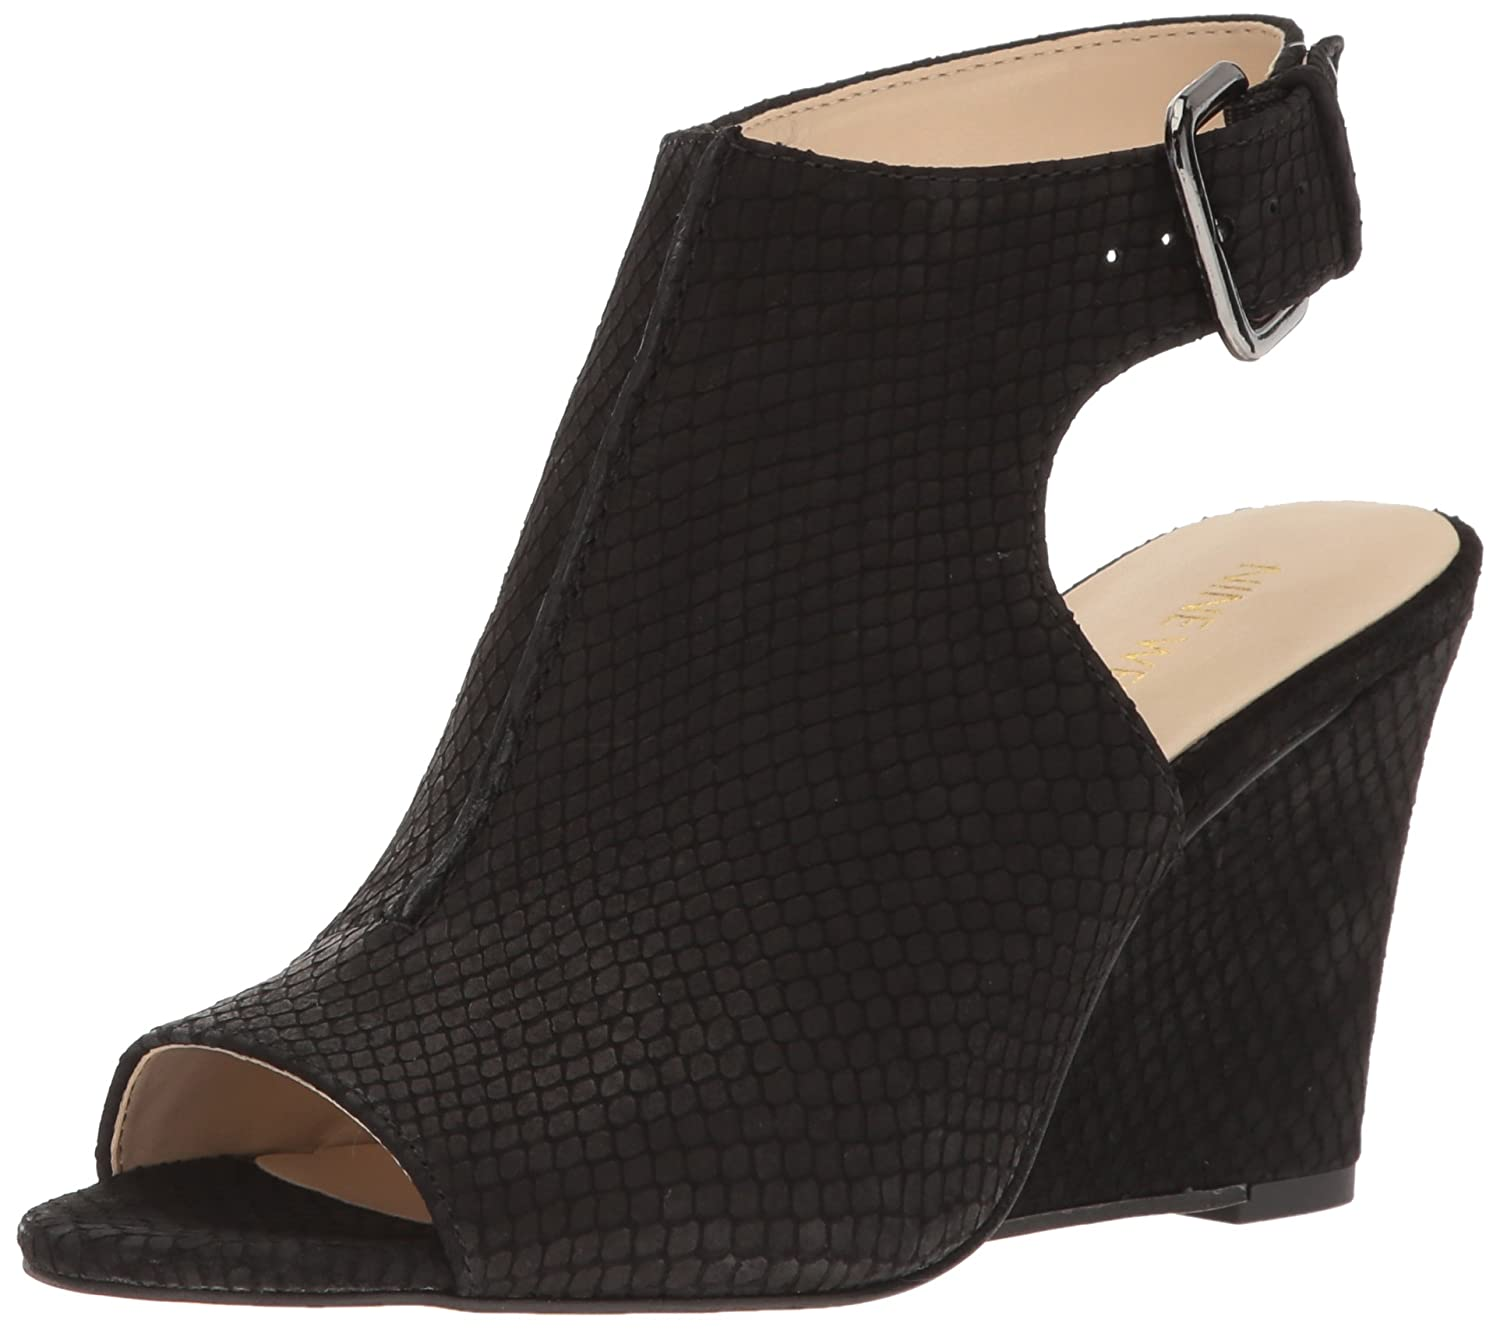 Nine West Women's Gorana Nubuck Wedge Sandal B01LW1VH3T 5 B(M) US|Black